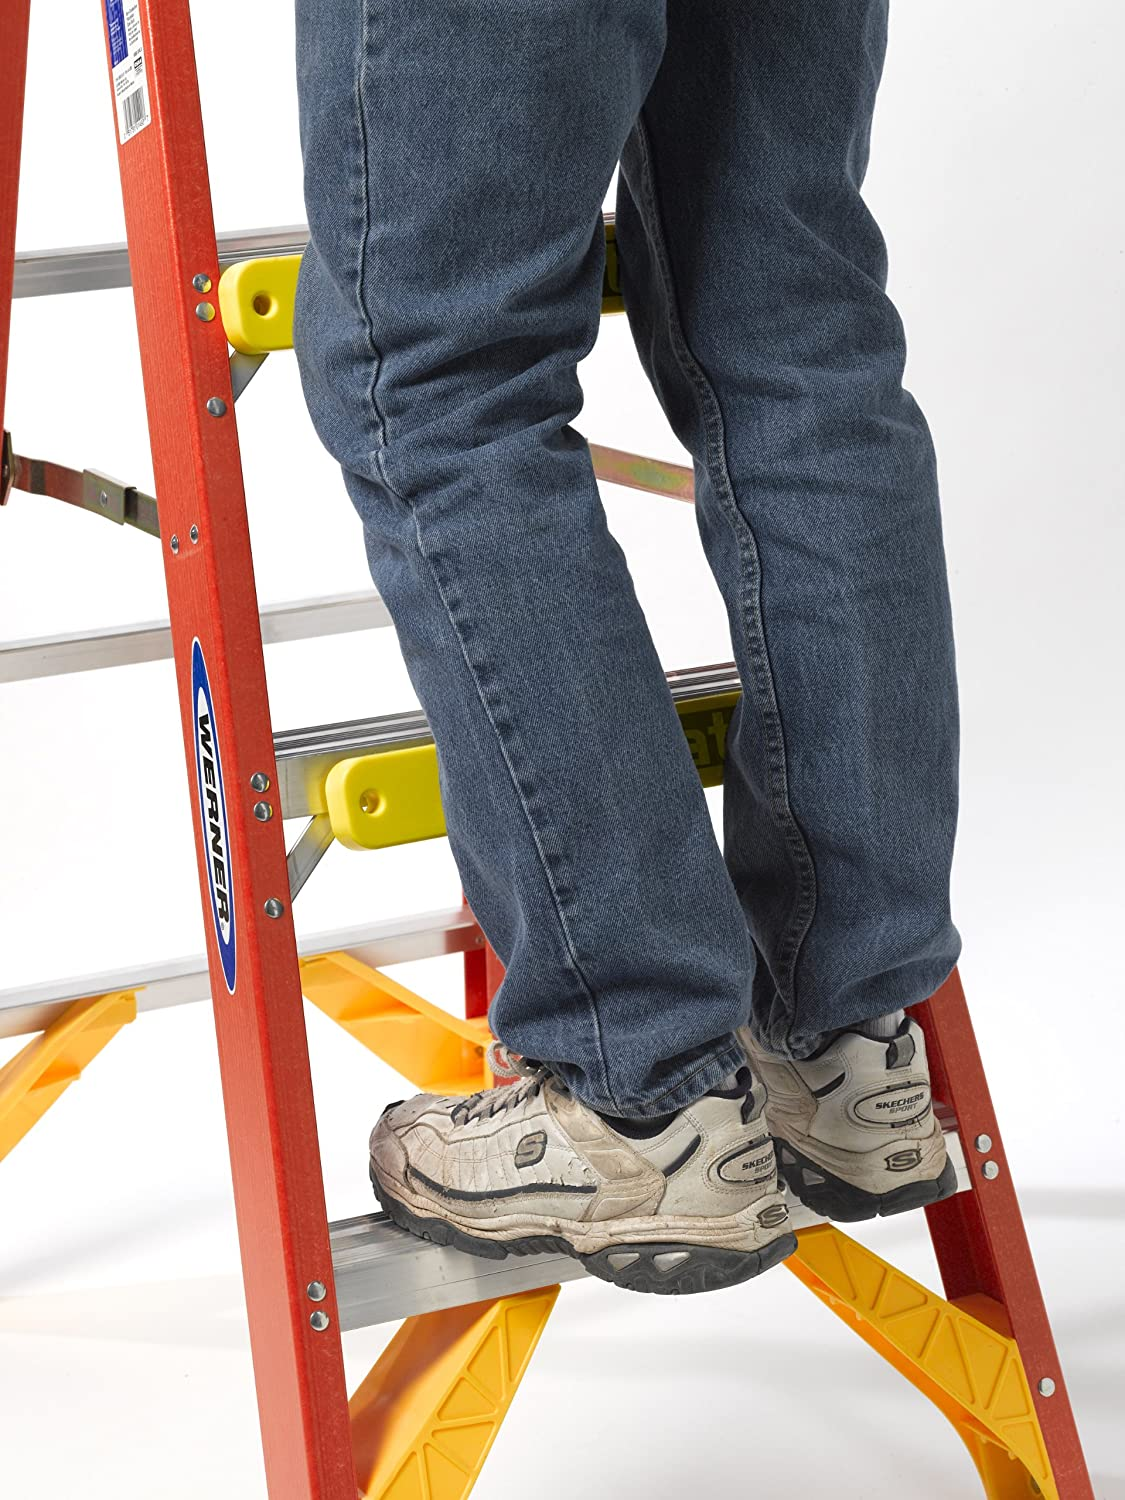 Soft but Durable Shin Saver Details about  /ShinMate Shin Protection Pad for Extention Ladder